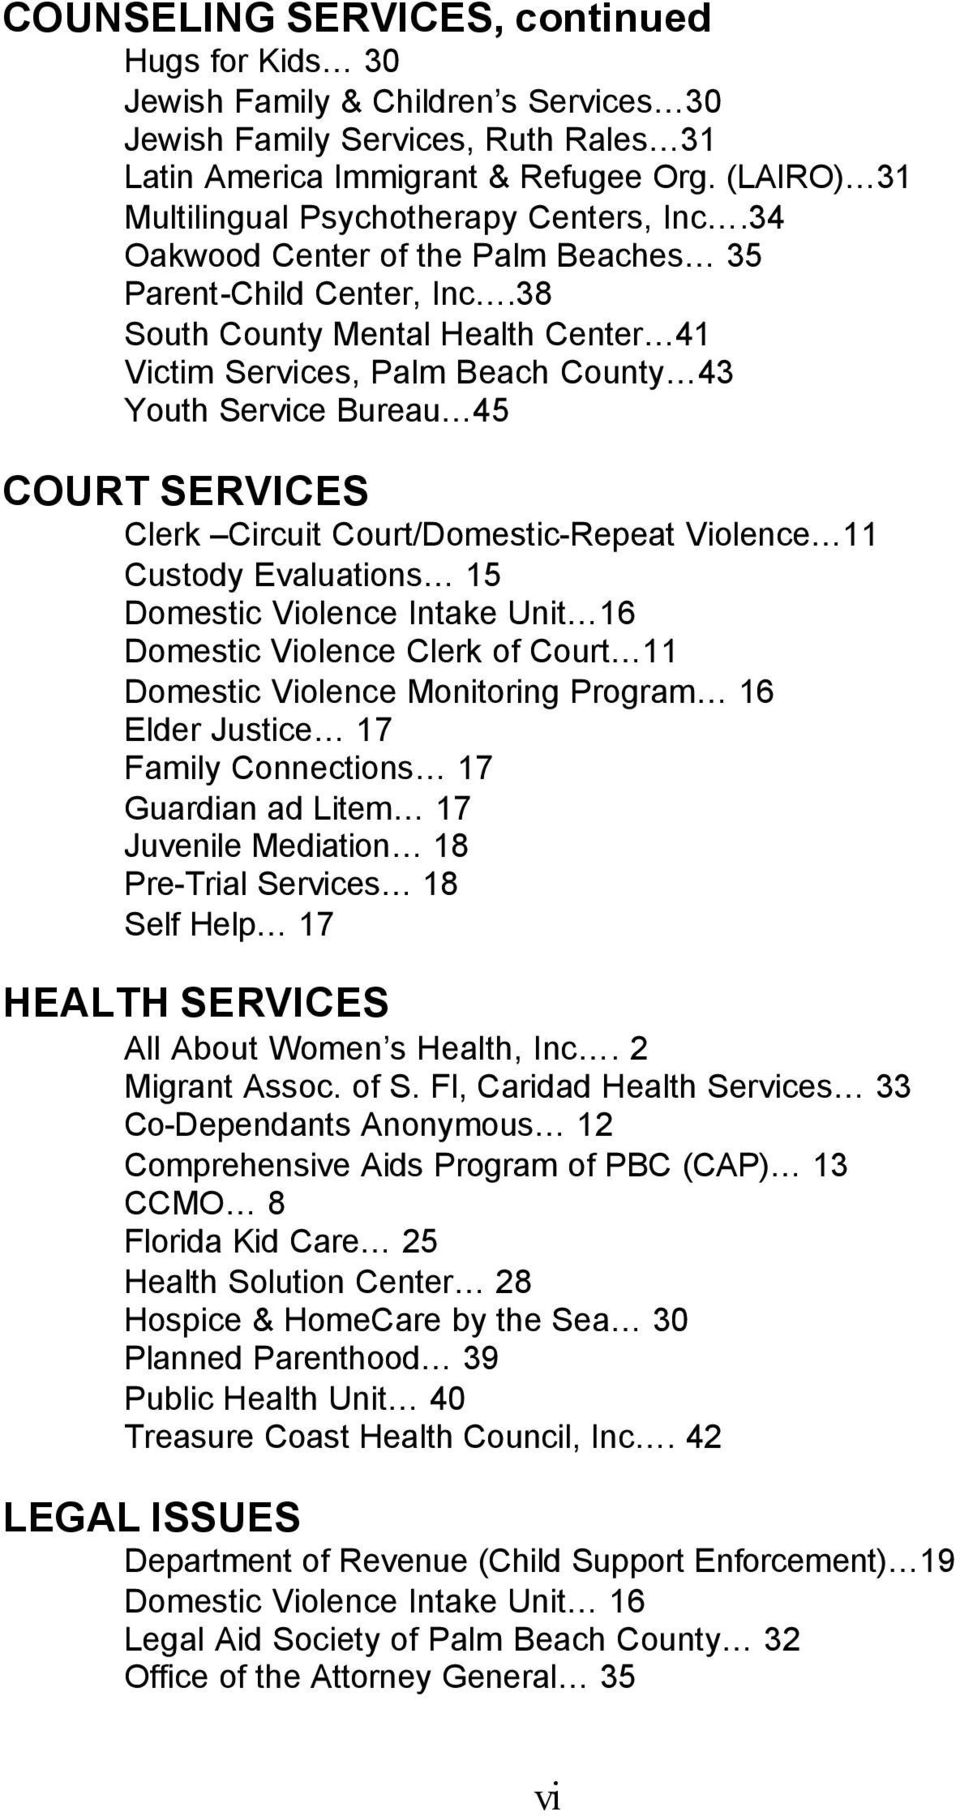 38 South County Mental Health Center 41 Victim Services, Palm Beach County 43 Youth Service Bureau 45 COURT SERVICES Clerk Circuit Court/Domestic-Repeat Violence 11 Custody Evaluations 15 Domestic